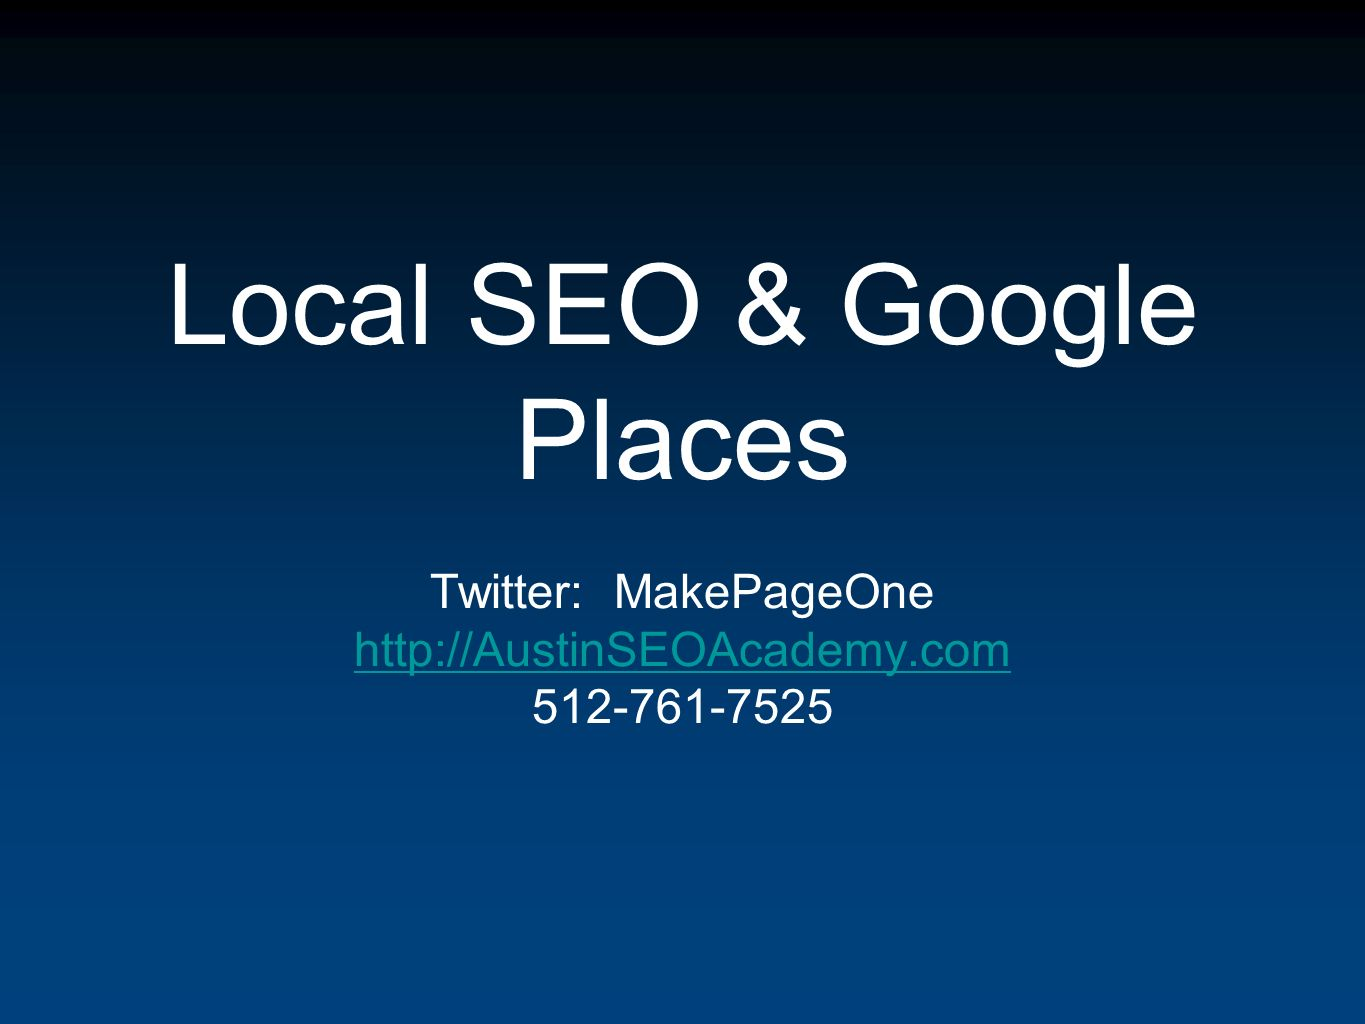 Local SEO & Google Places Twitter: MakePageOne